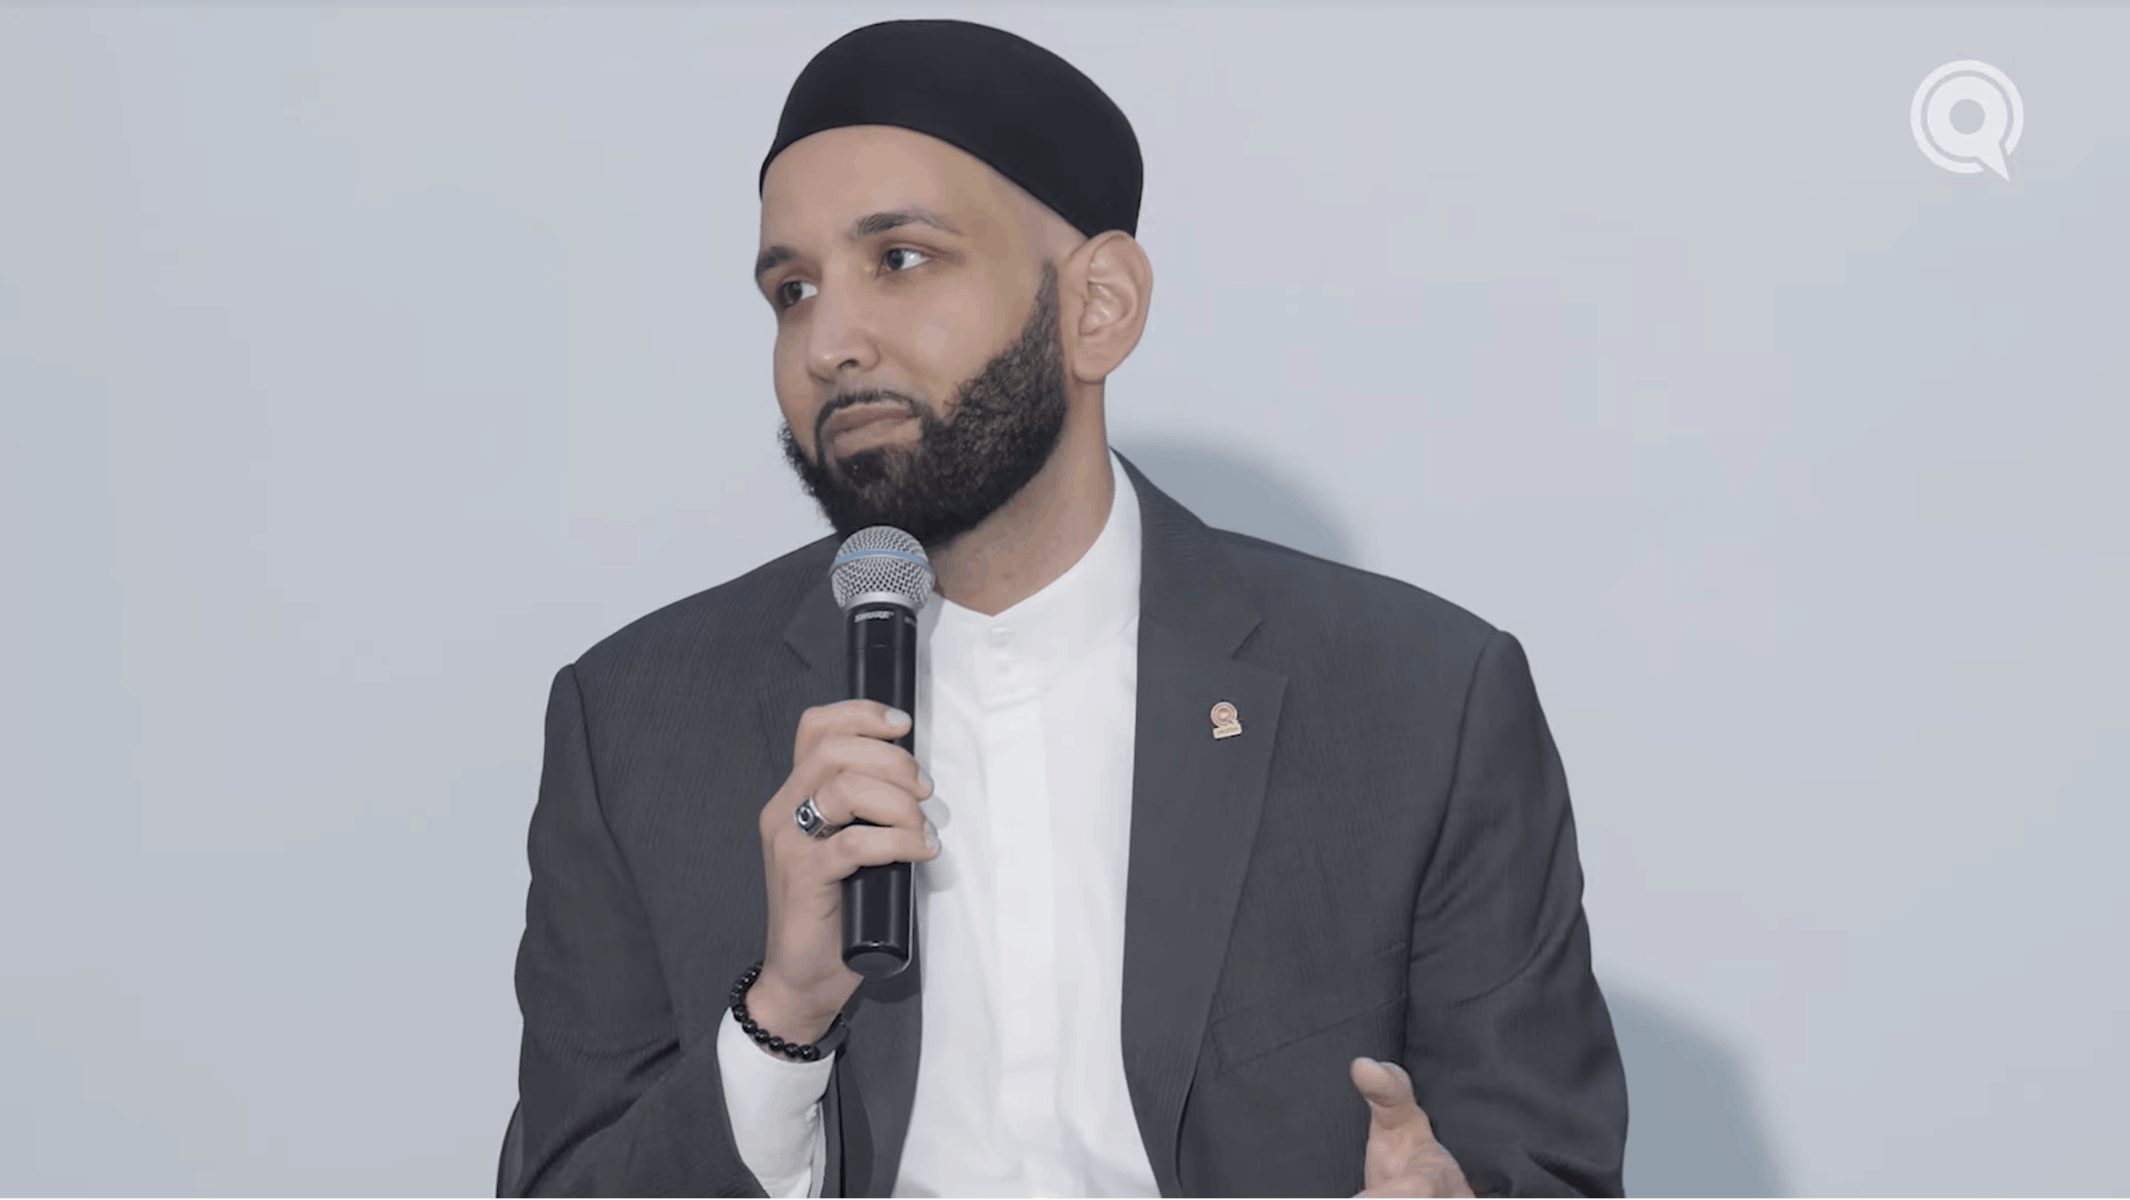 Omar Suleiman – To Know Him is to Love Him